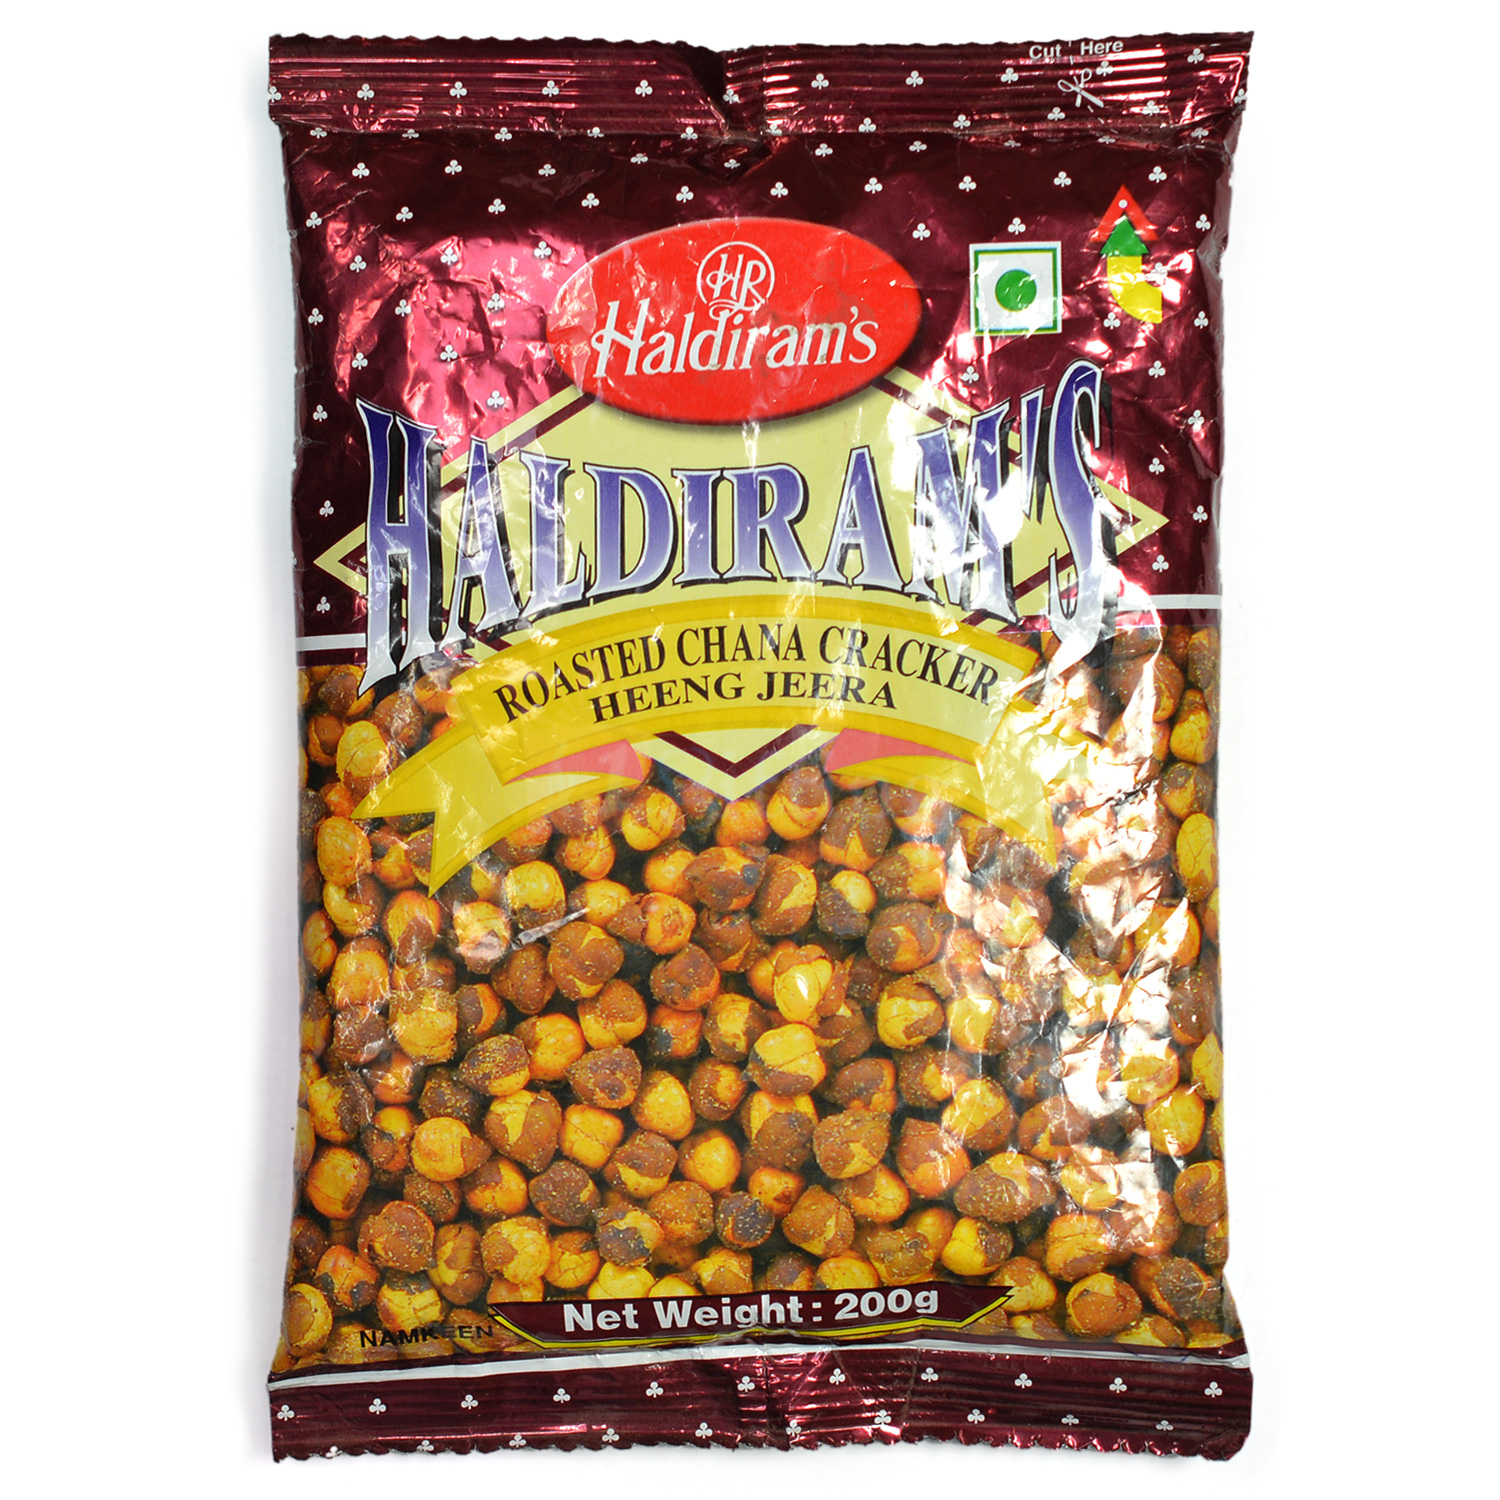 Roasted Chana Cracker Heeng Jeera by Haldiram